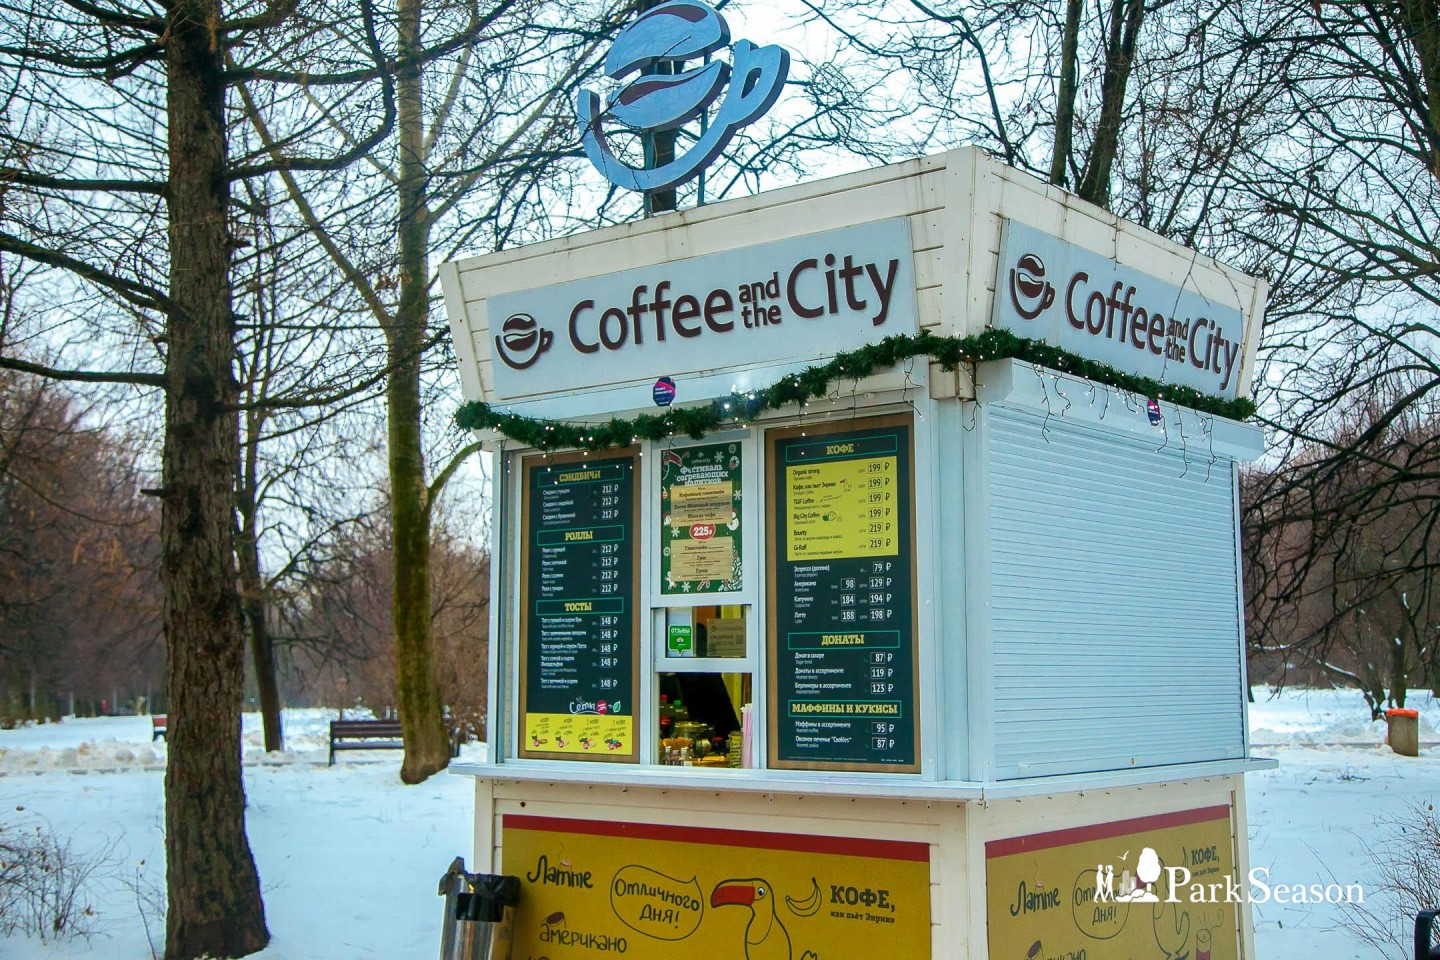 Киоск Сoffee and the City, Парк «Северное Тушино», Москва — ParkSeason